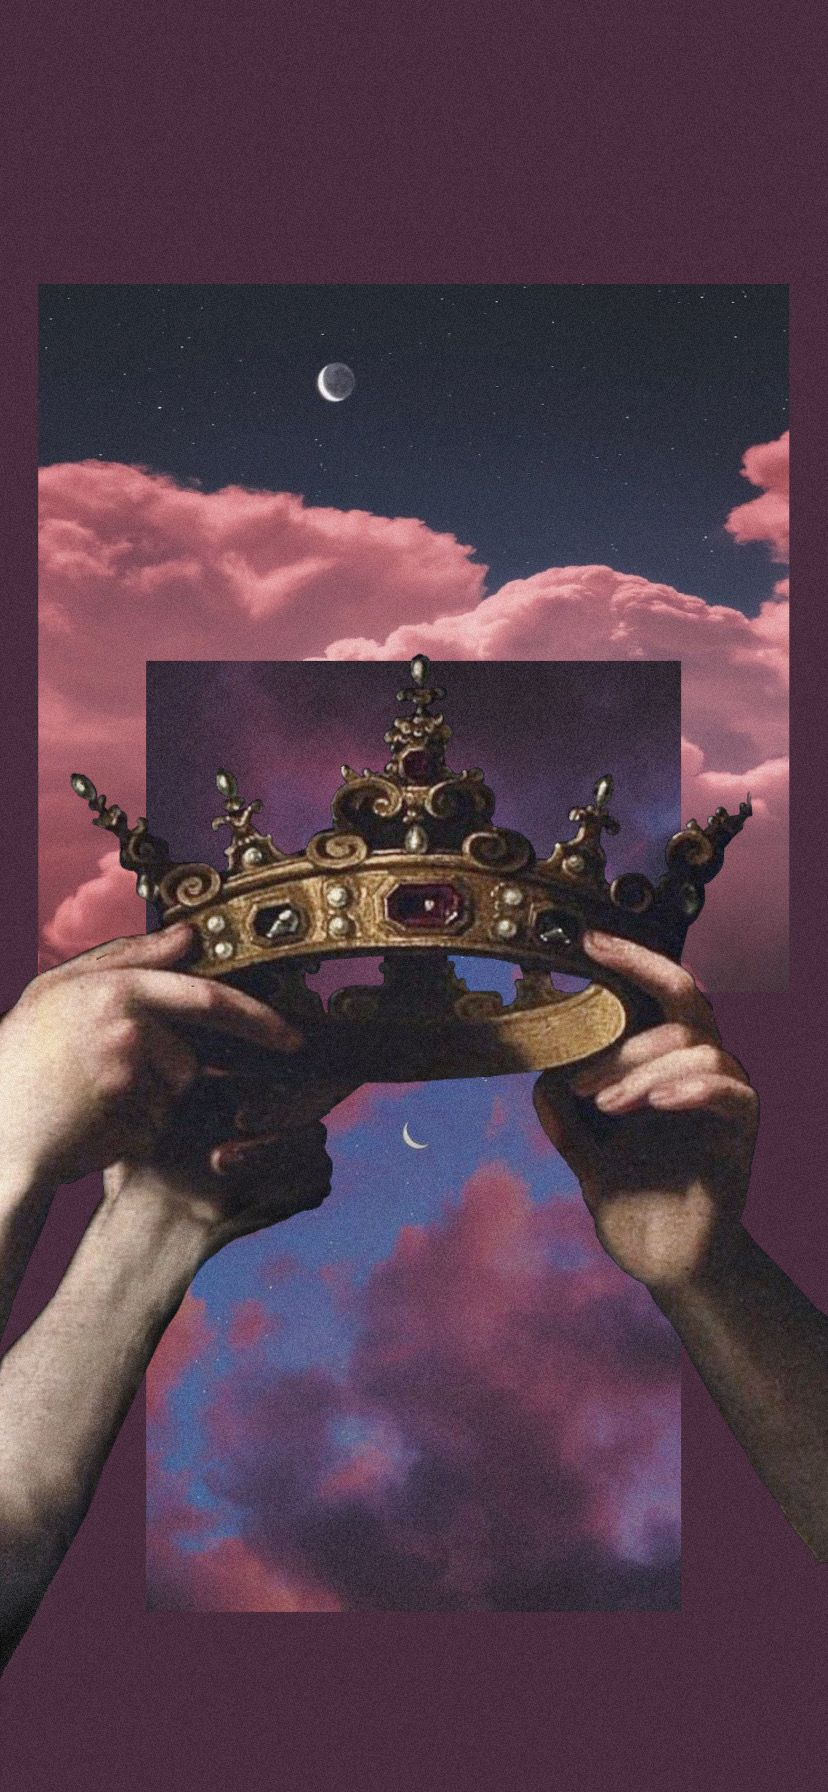 Aethetic iPhone wallpaper 👑                                                                               #aesthetic #wallpaper #iphone #purple #crown #hands #sky #aestheticwallpaper #aestheticvintage #freetoedit